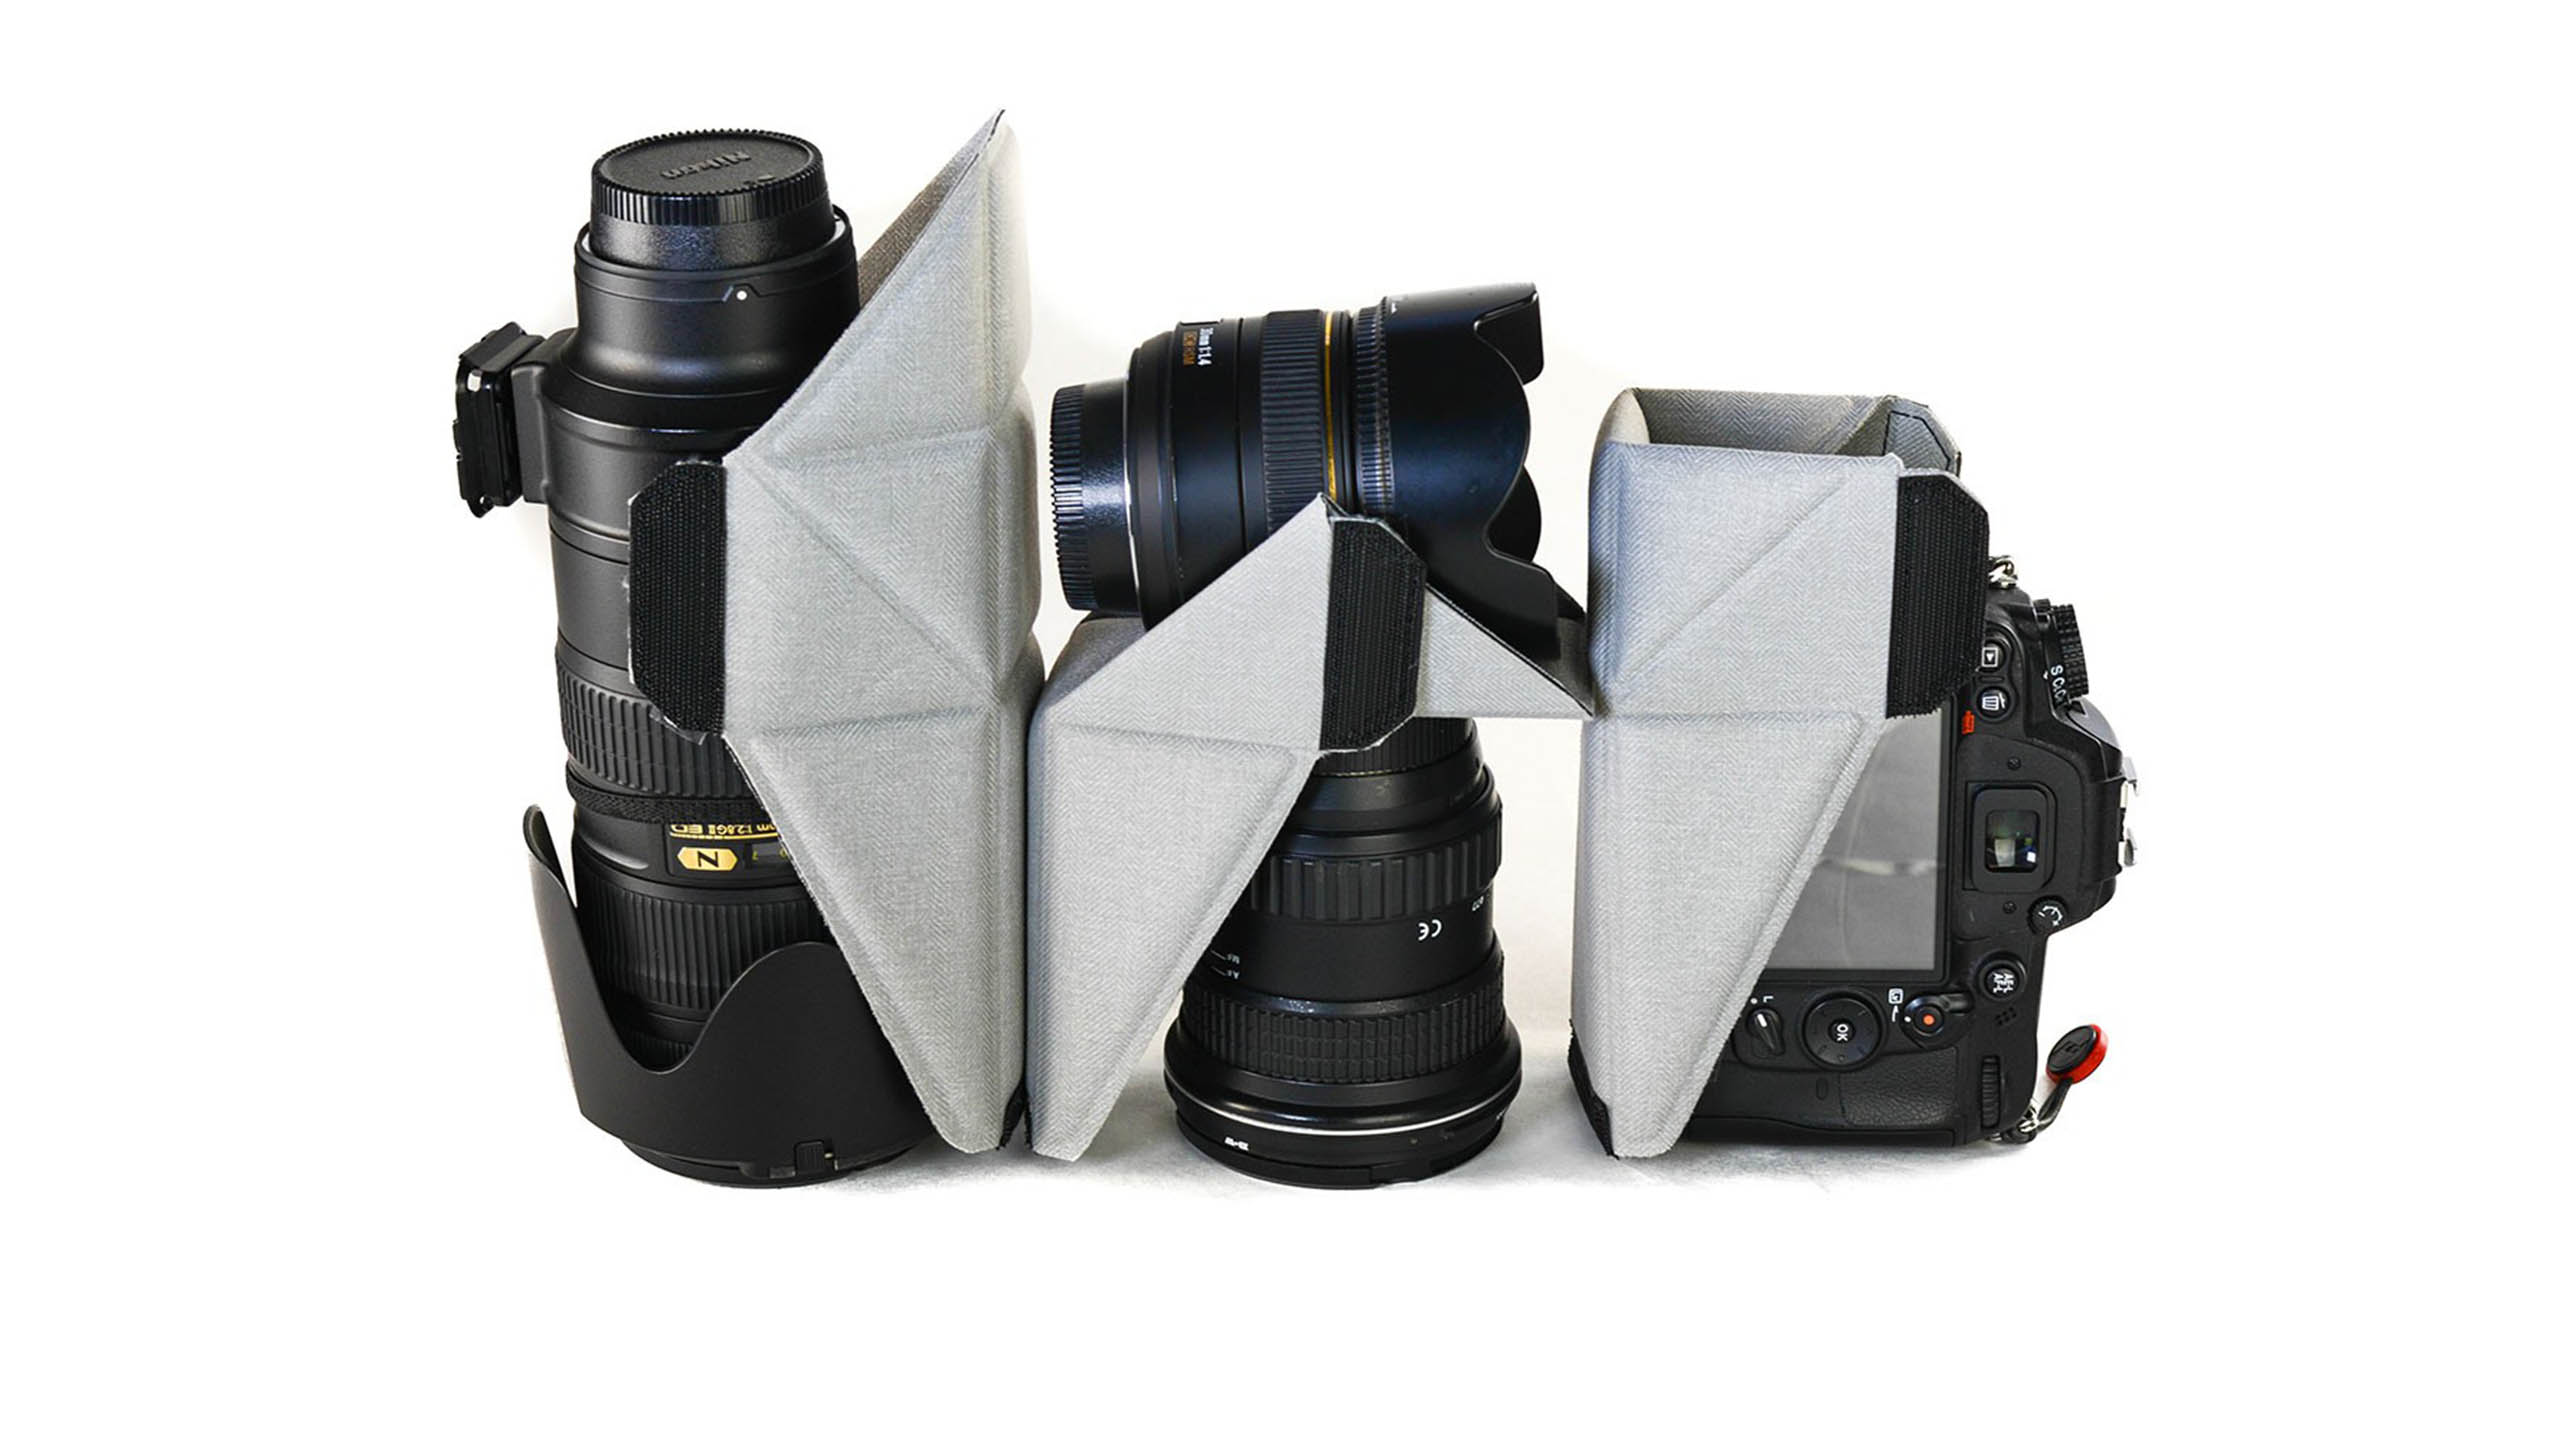 dividers-with-lenses-camera